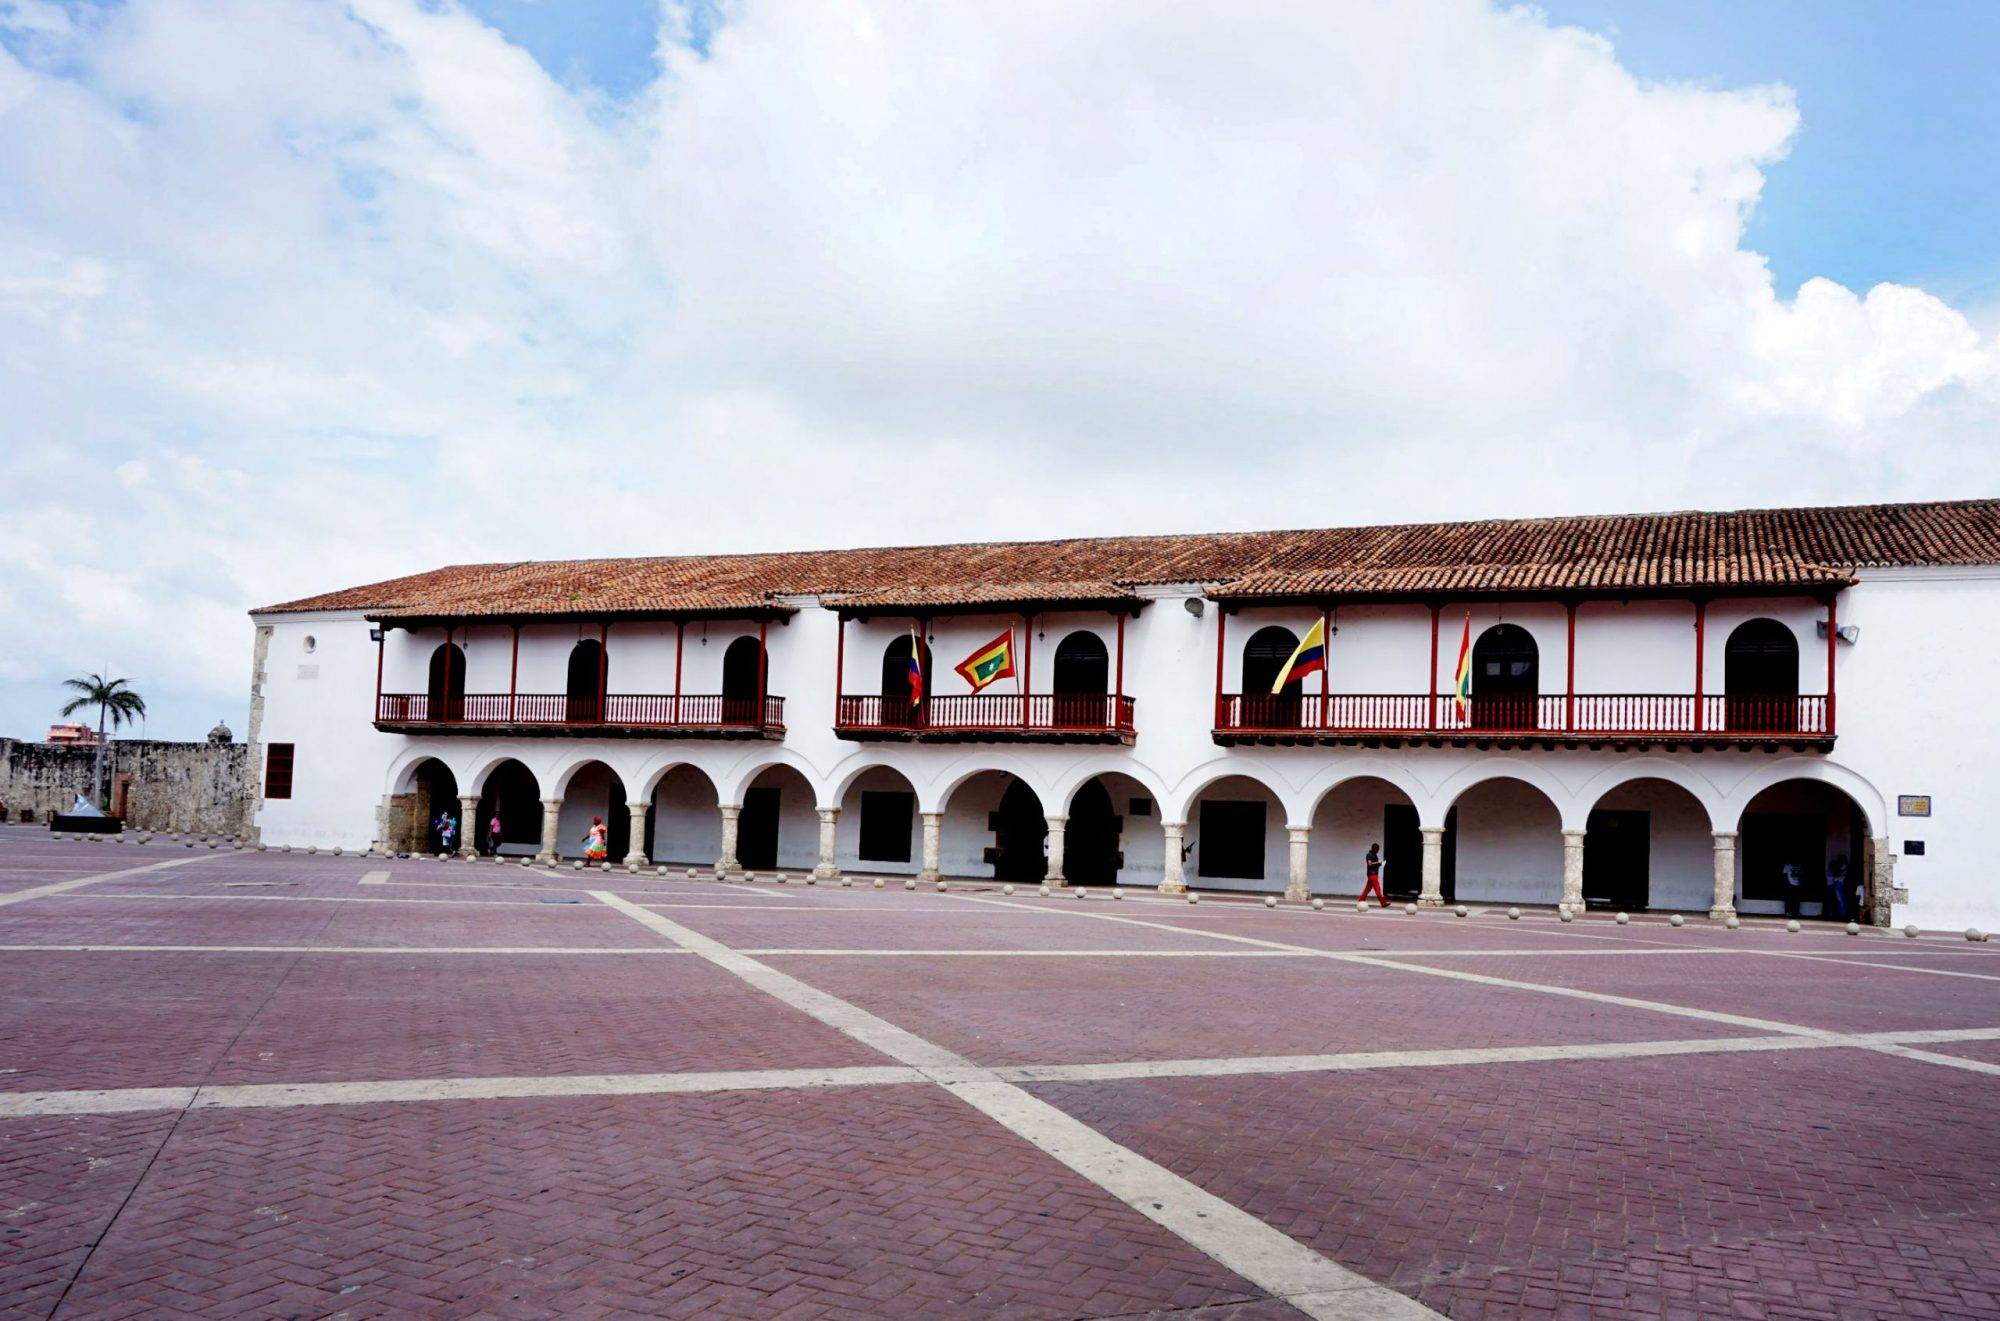 Center of Cartagena de Indias